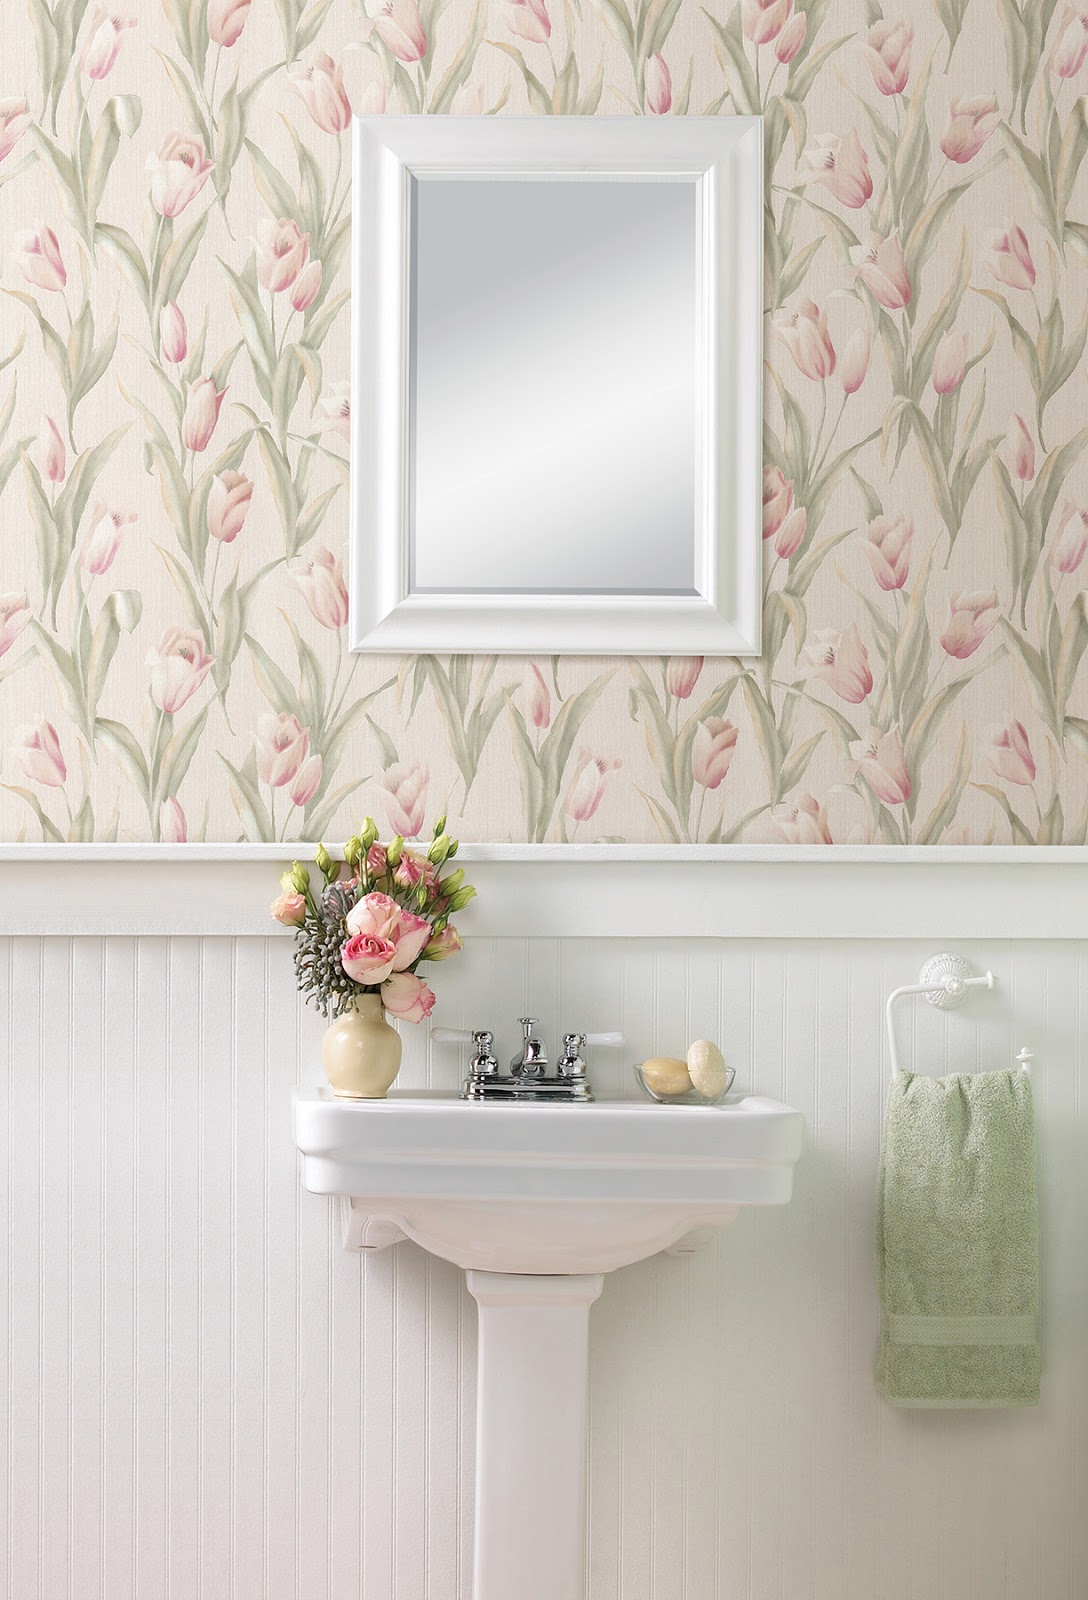 https://www.wallcoveringsforless.com/shoppingcart/prodlist1.CFM?page=_prod_detail.cfm&product_id=42842&startrow=49&search=resource%20iii&pagereturn=_search.cfm